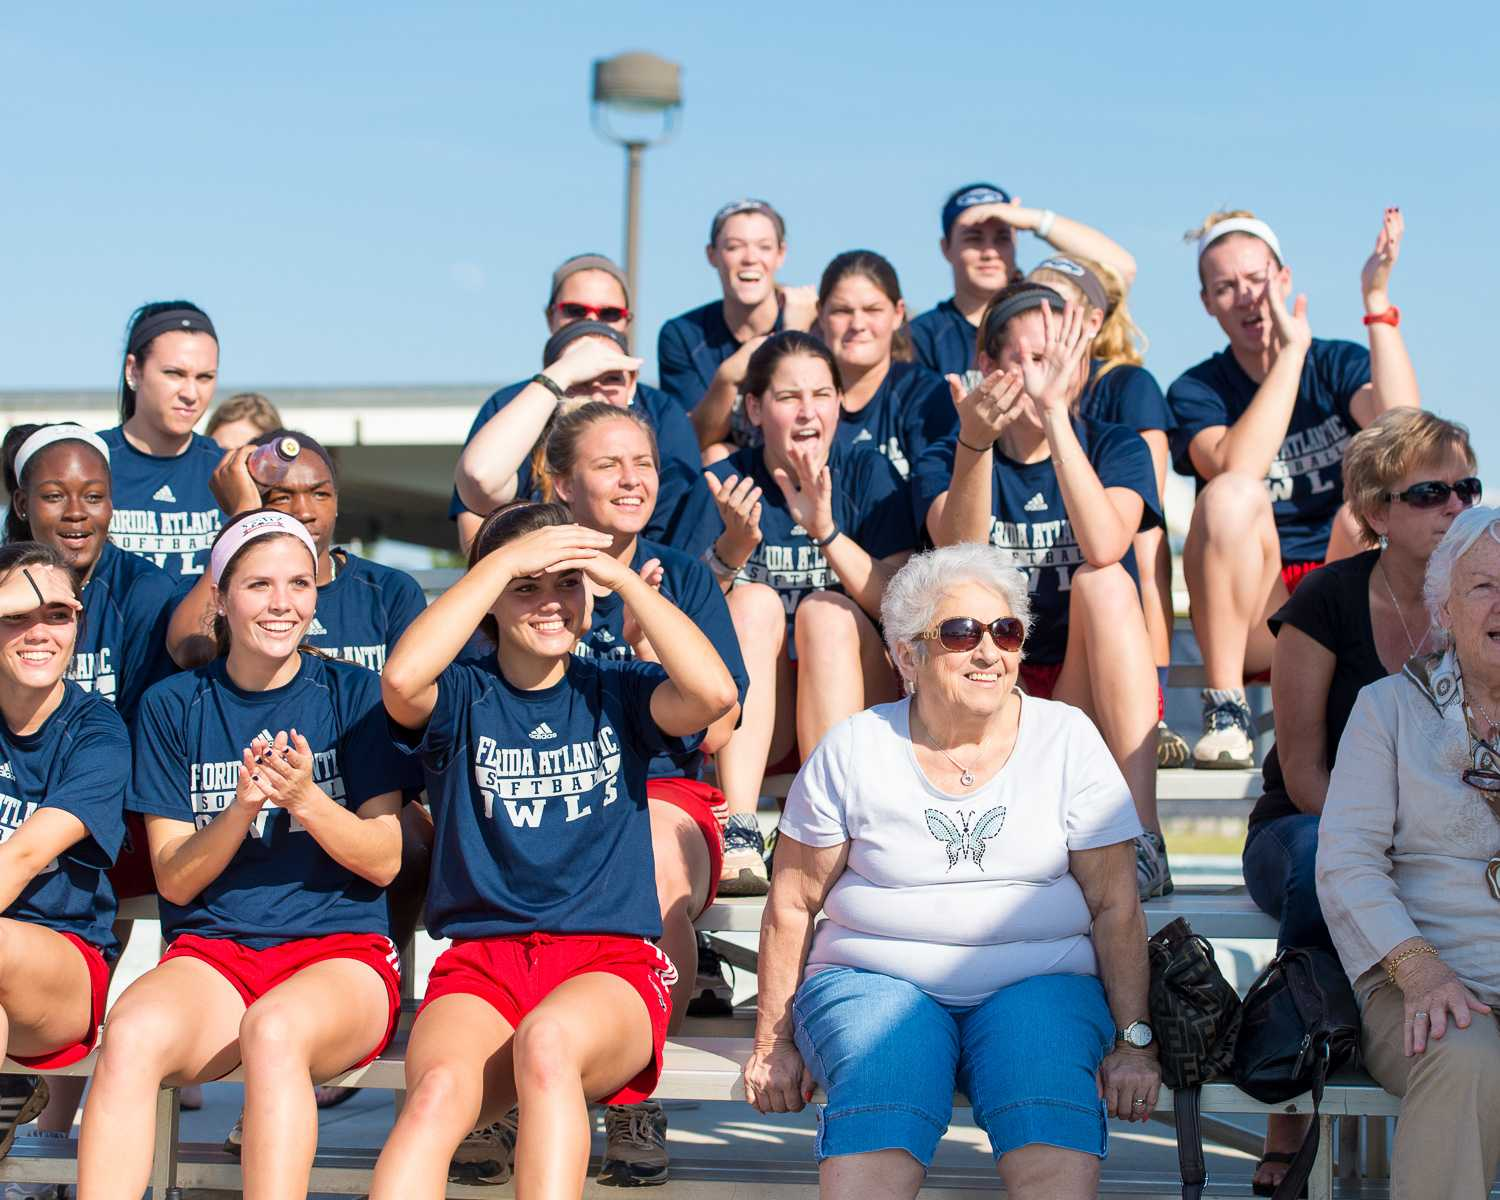 The FAU Softball team was in attendance to cheer on their fellow Owls on Friday Jan. 30.